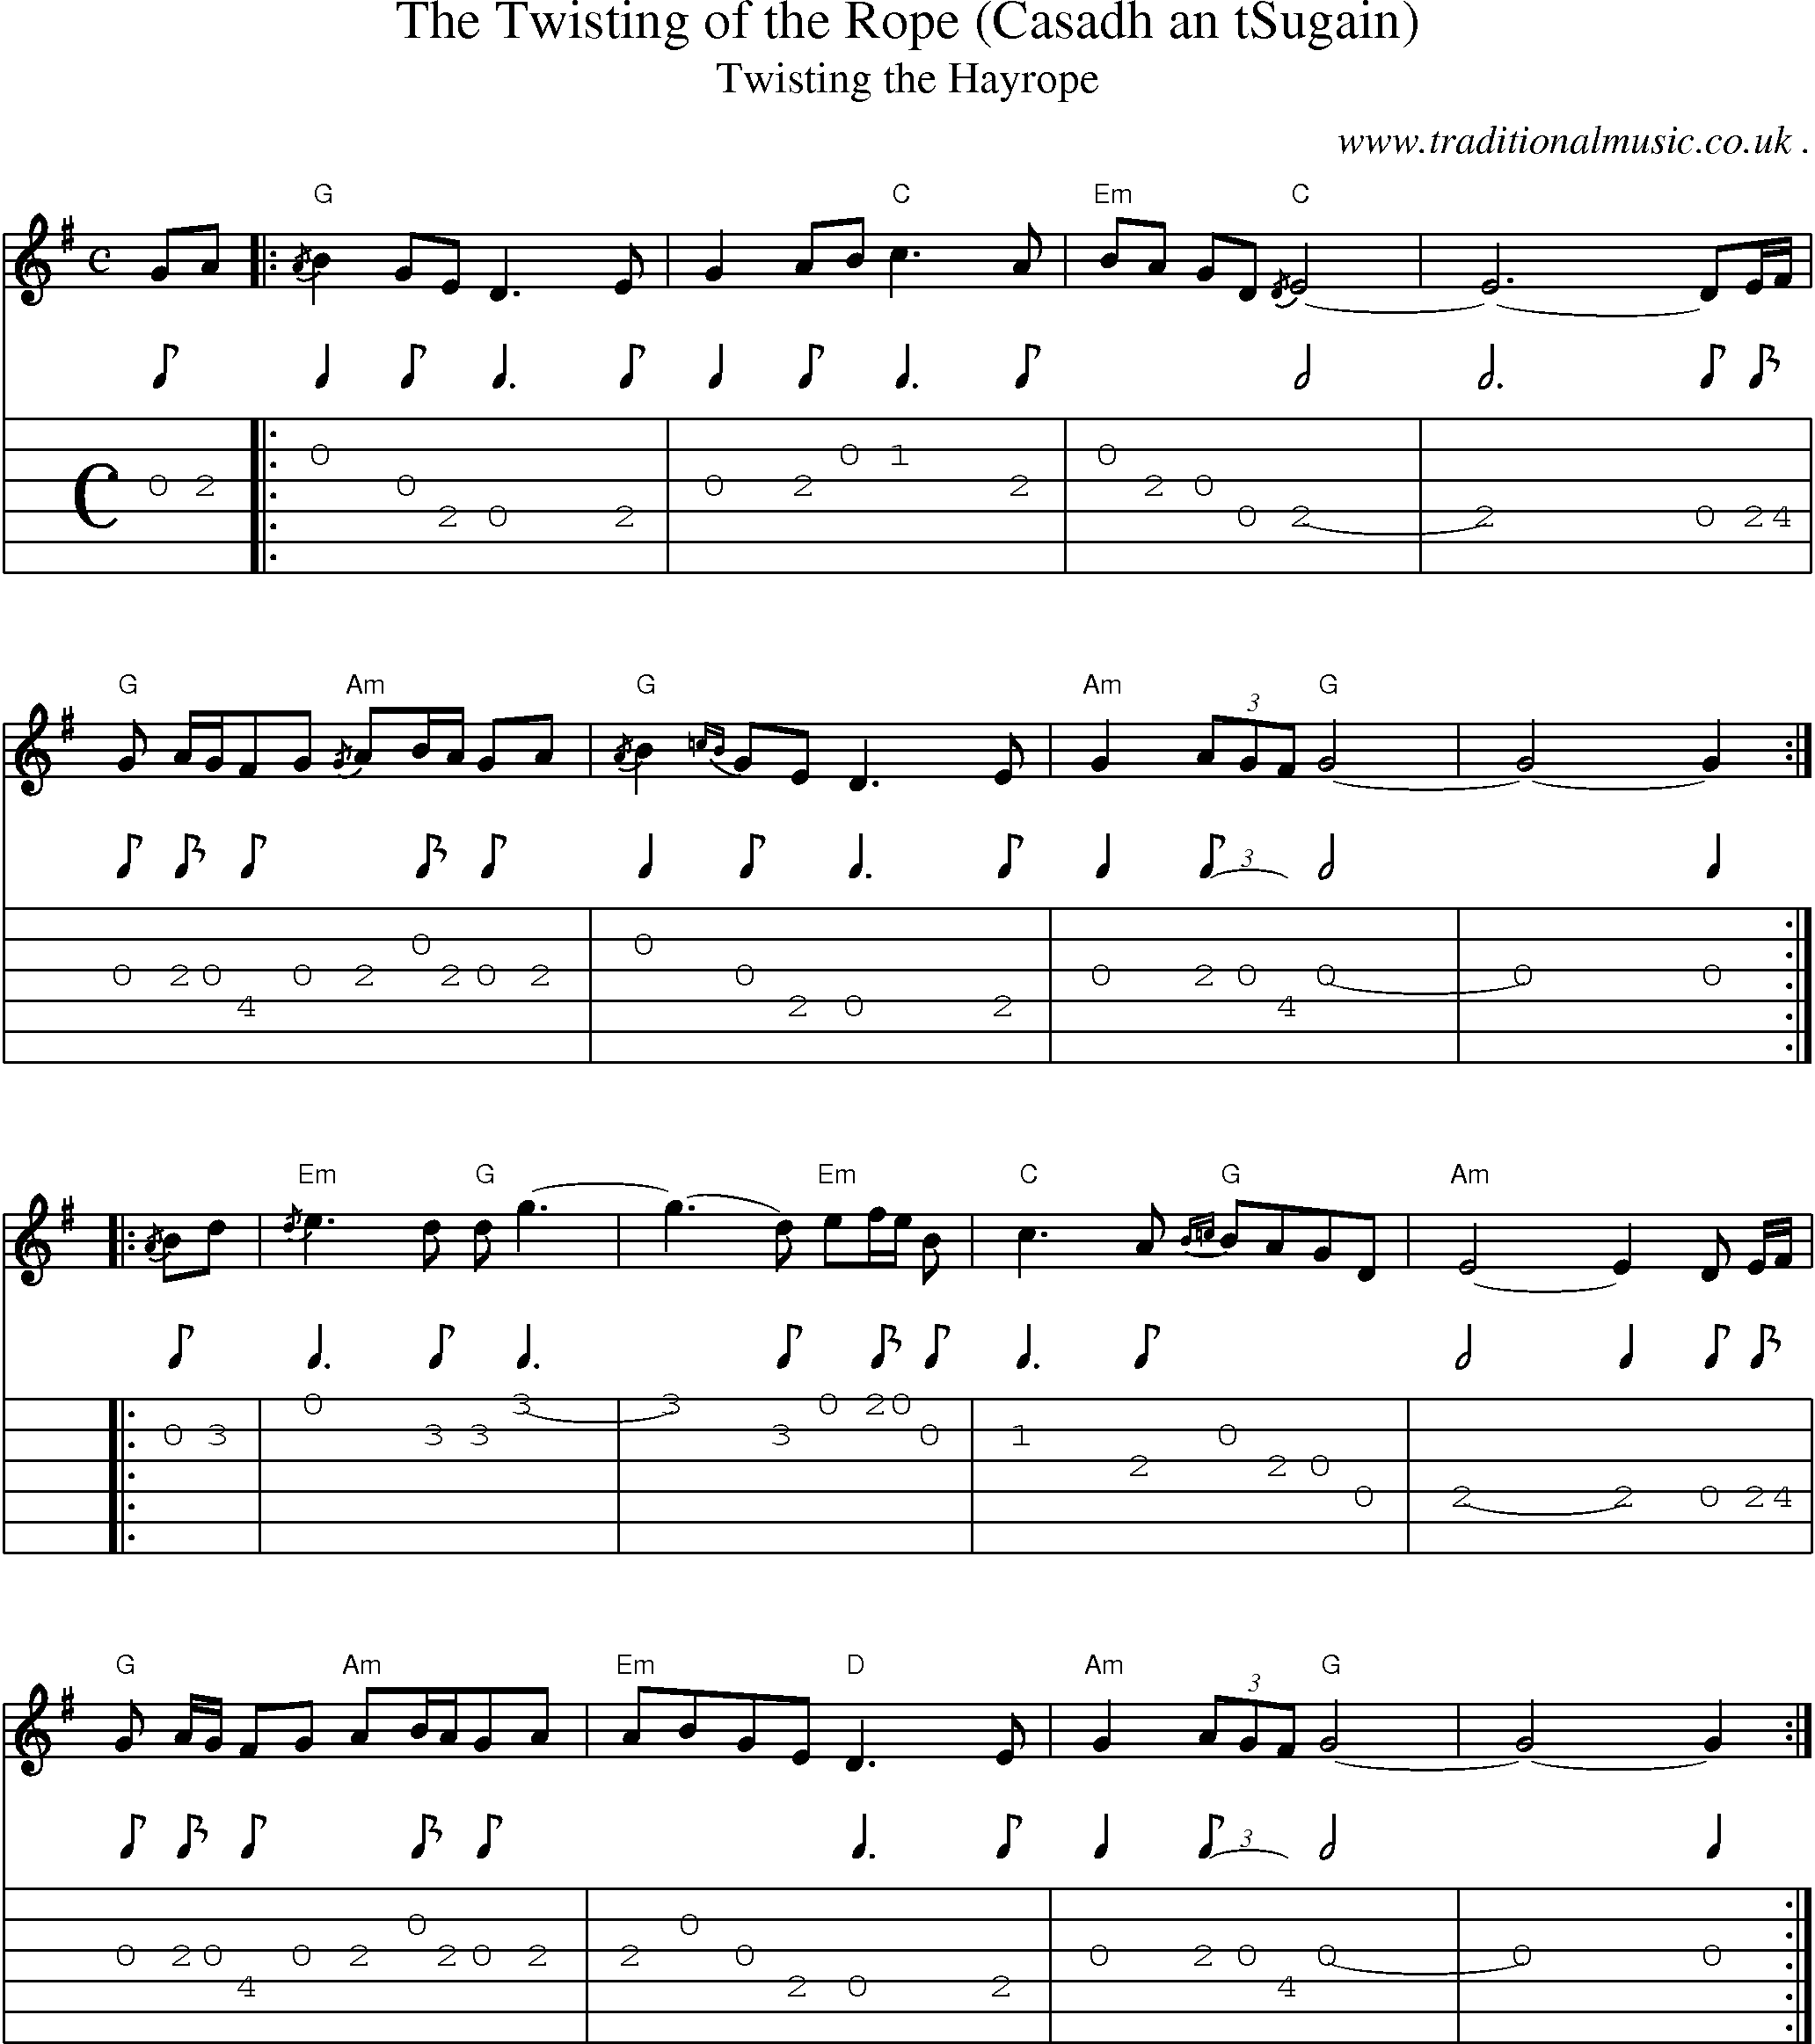 Scottish Tune Score Guitar Chords Amp Tabs The Twisting Of The Rope Casadh An Tsugain